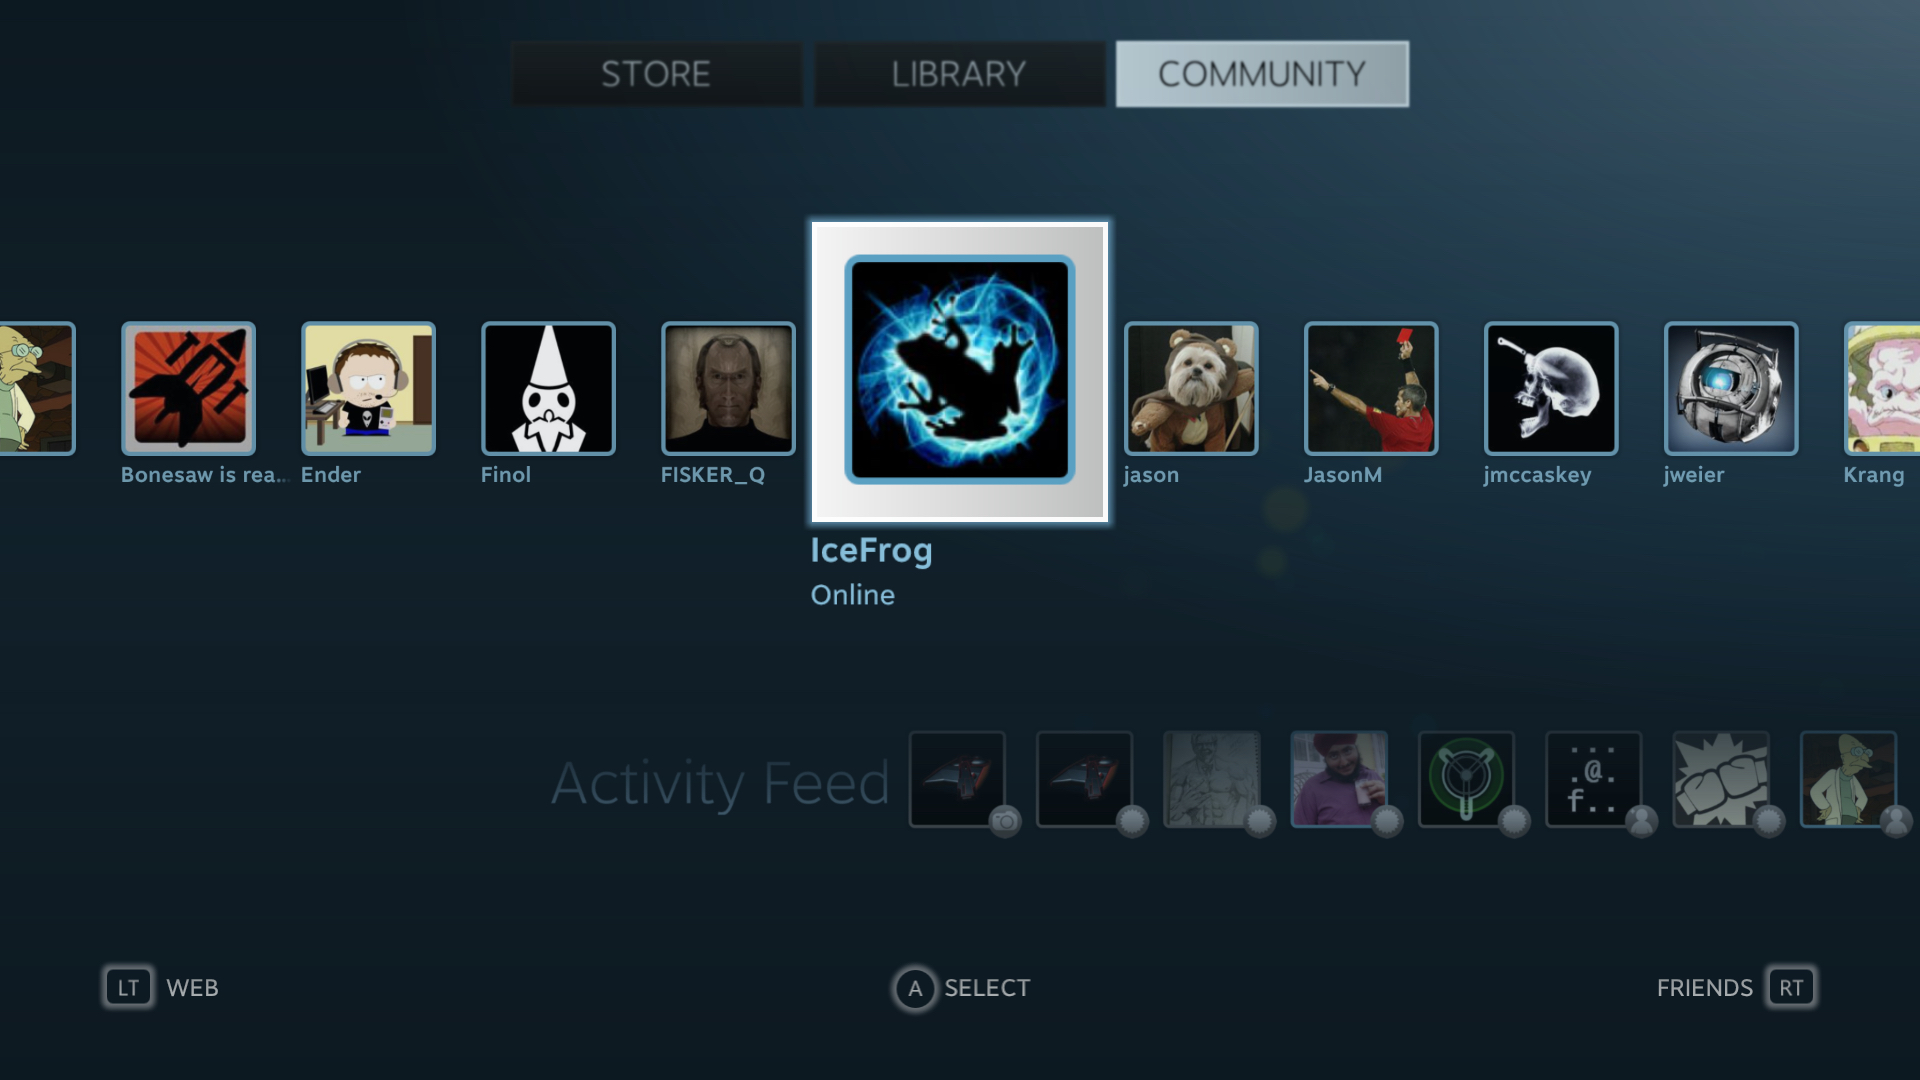 The best Linux distro for gaming in 2018 - iBlogiBlog